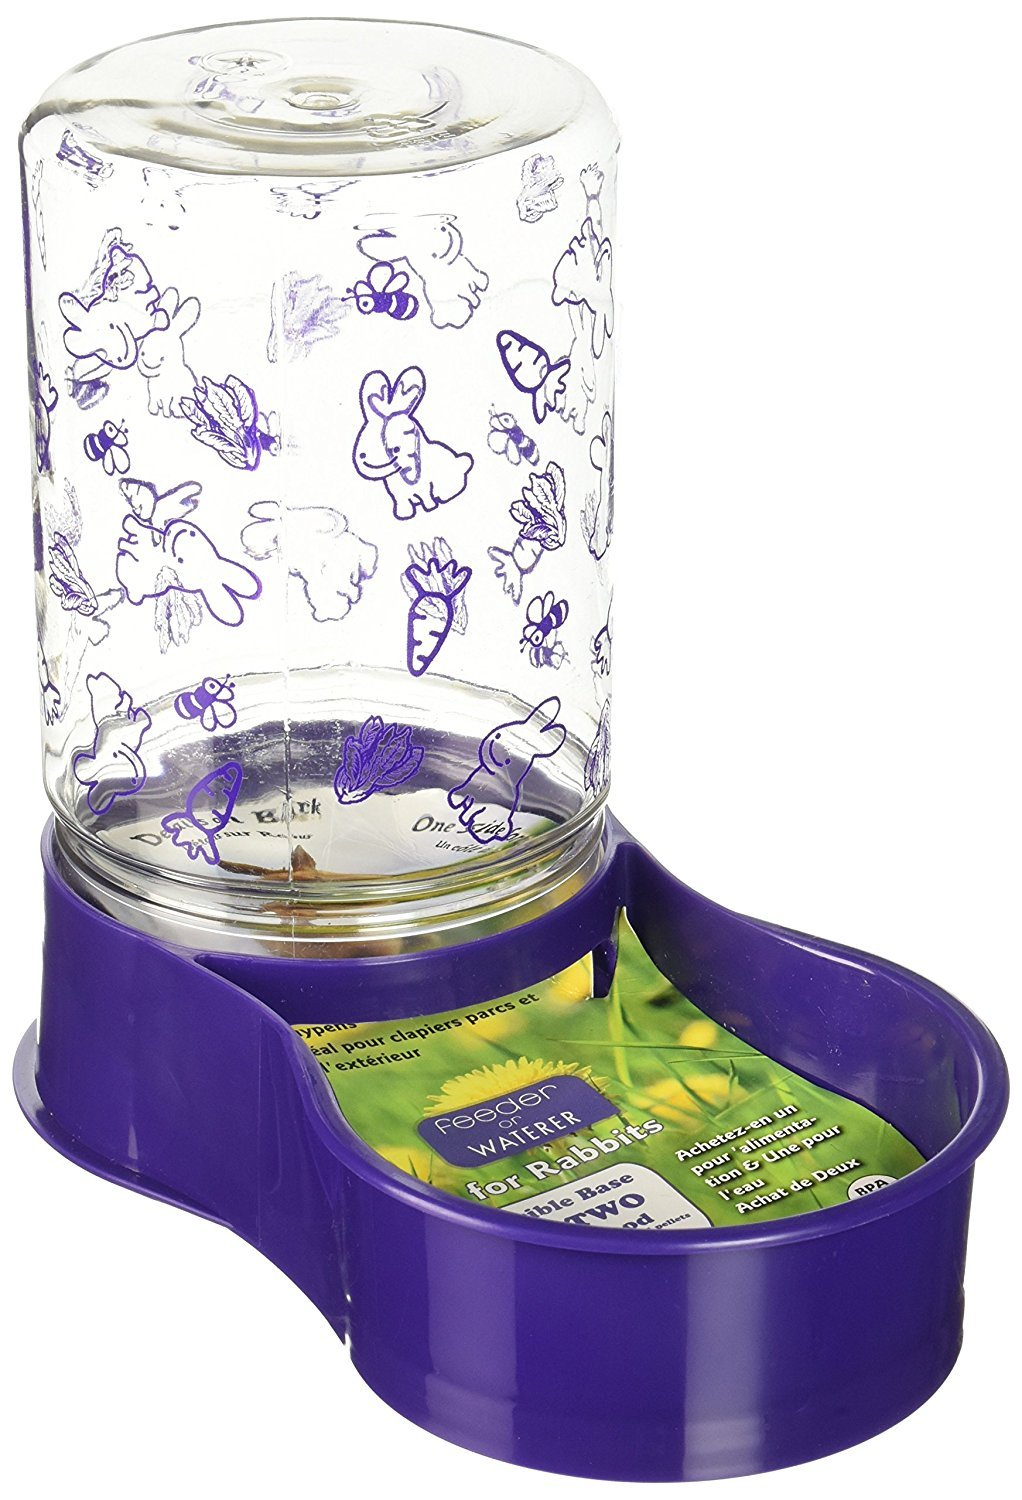 Lixit Animal Care Rabbit Feeder/Water Fountain, 48-Ounce